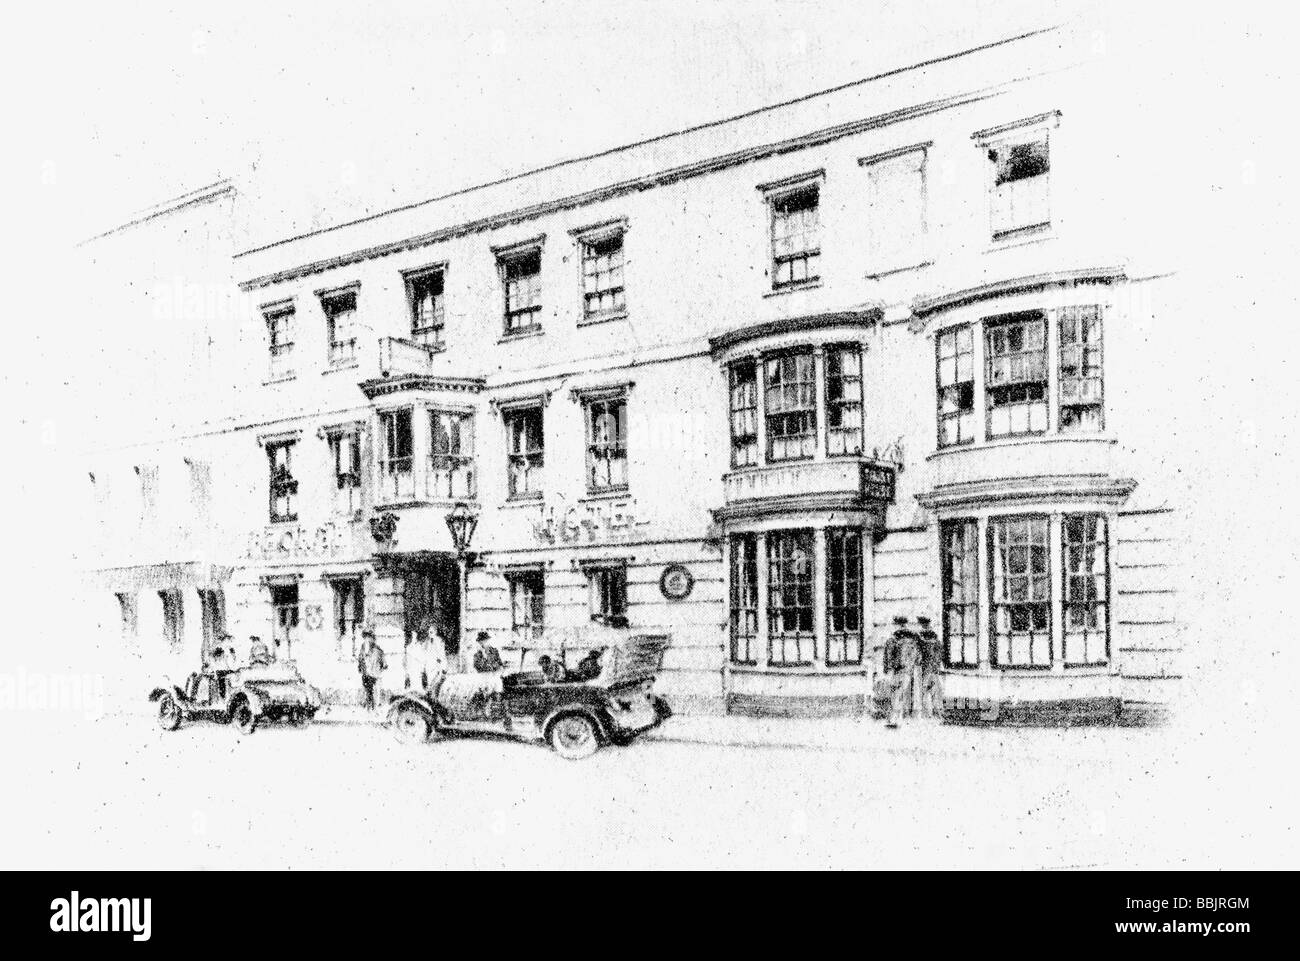 The historic George inn at Porstmouth Hampshire England in the 1920s. Pencil drawing by Mr W. M. Keesey. - Stock Image